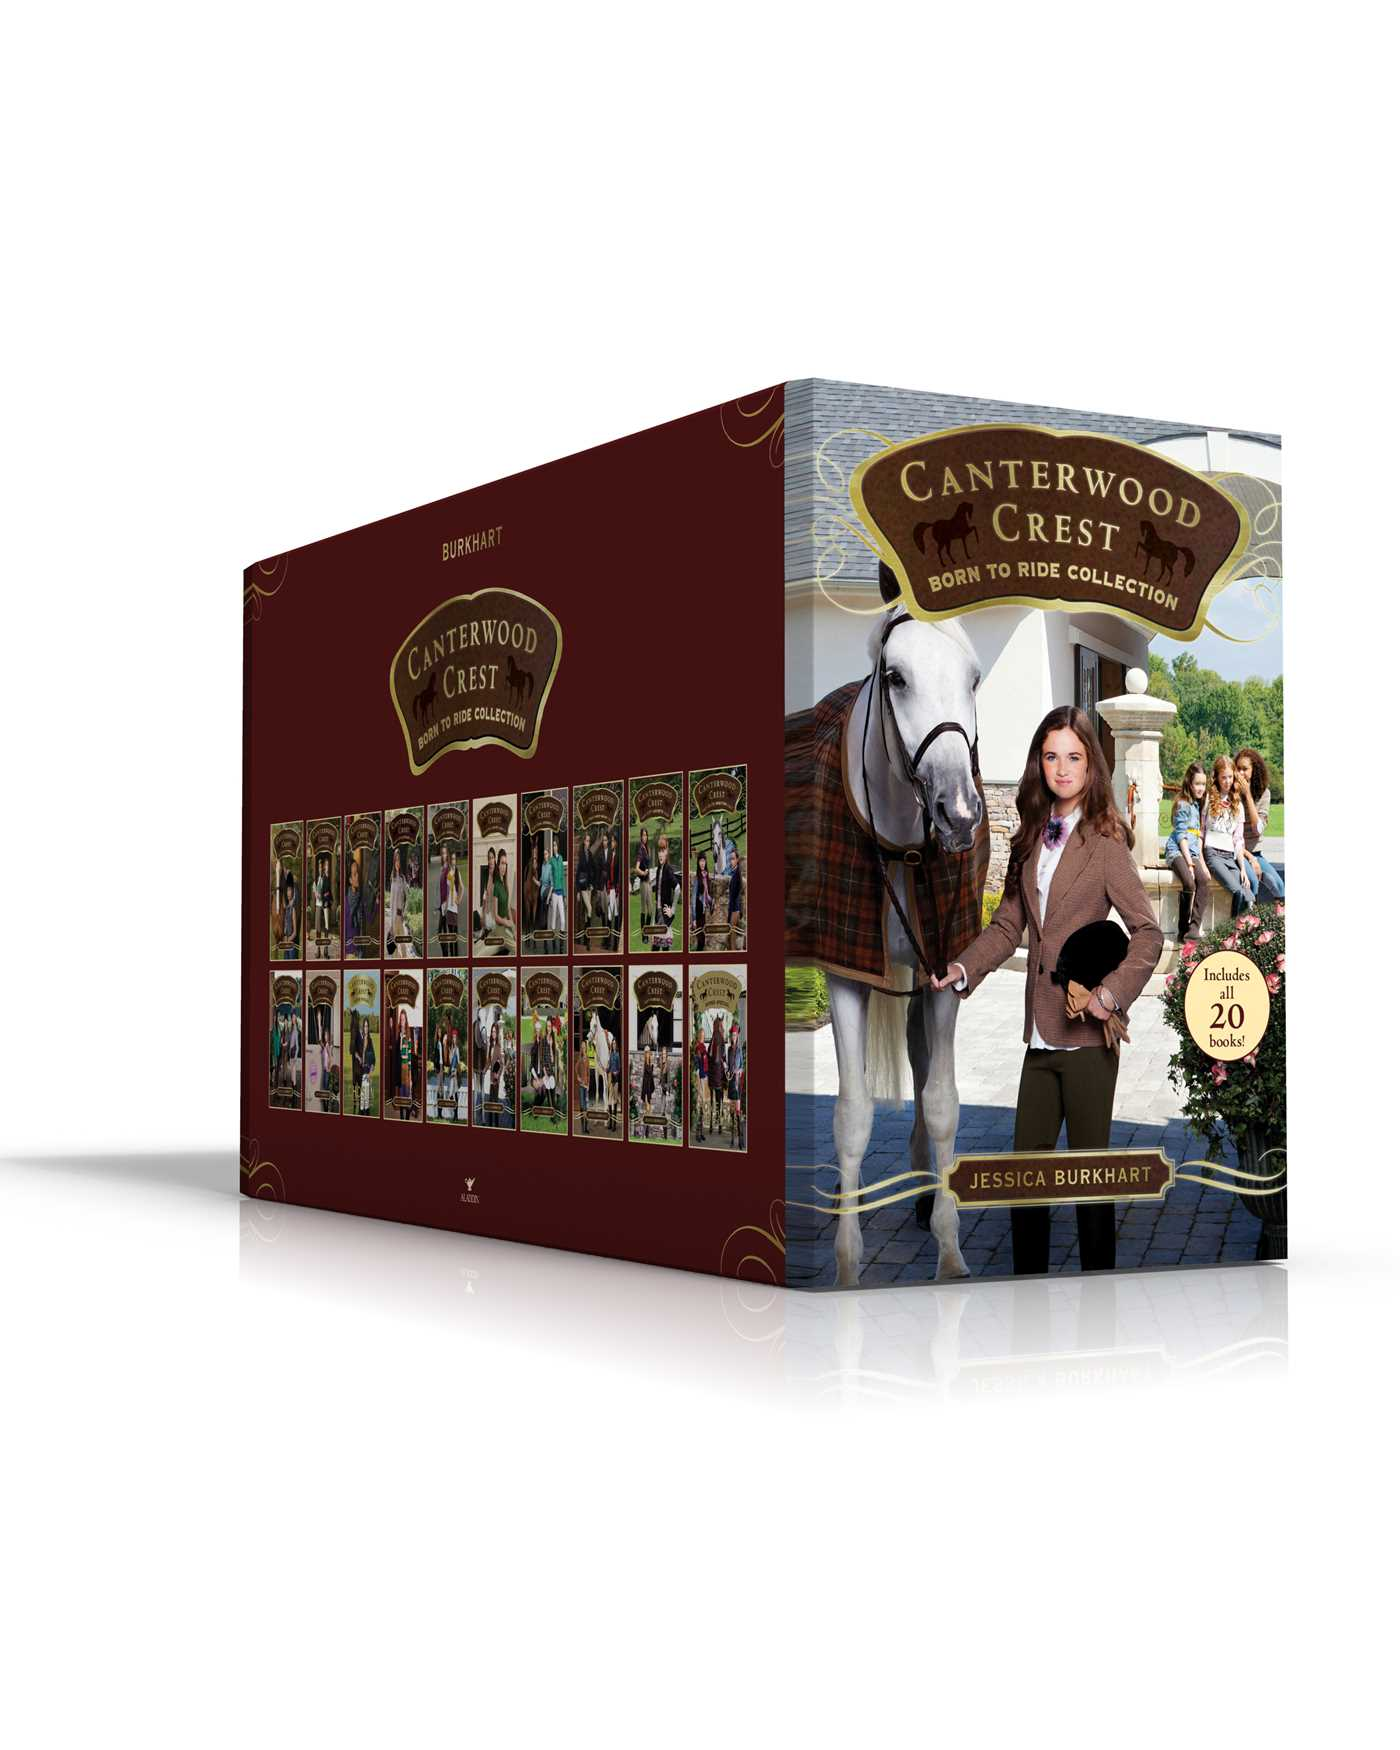 Canterwood crest born to ride collection 9781481496964 hr